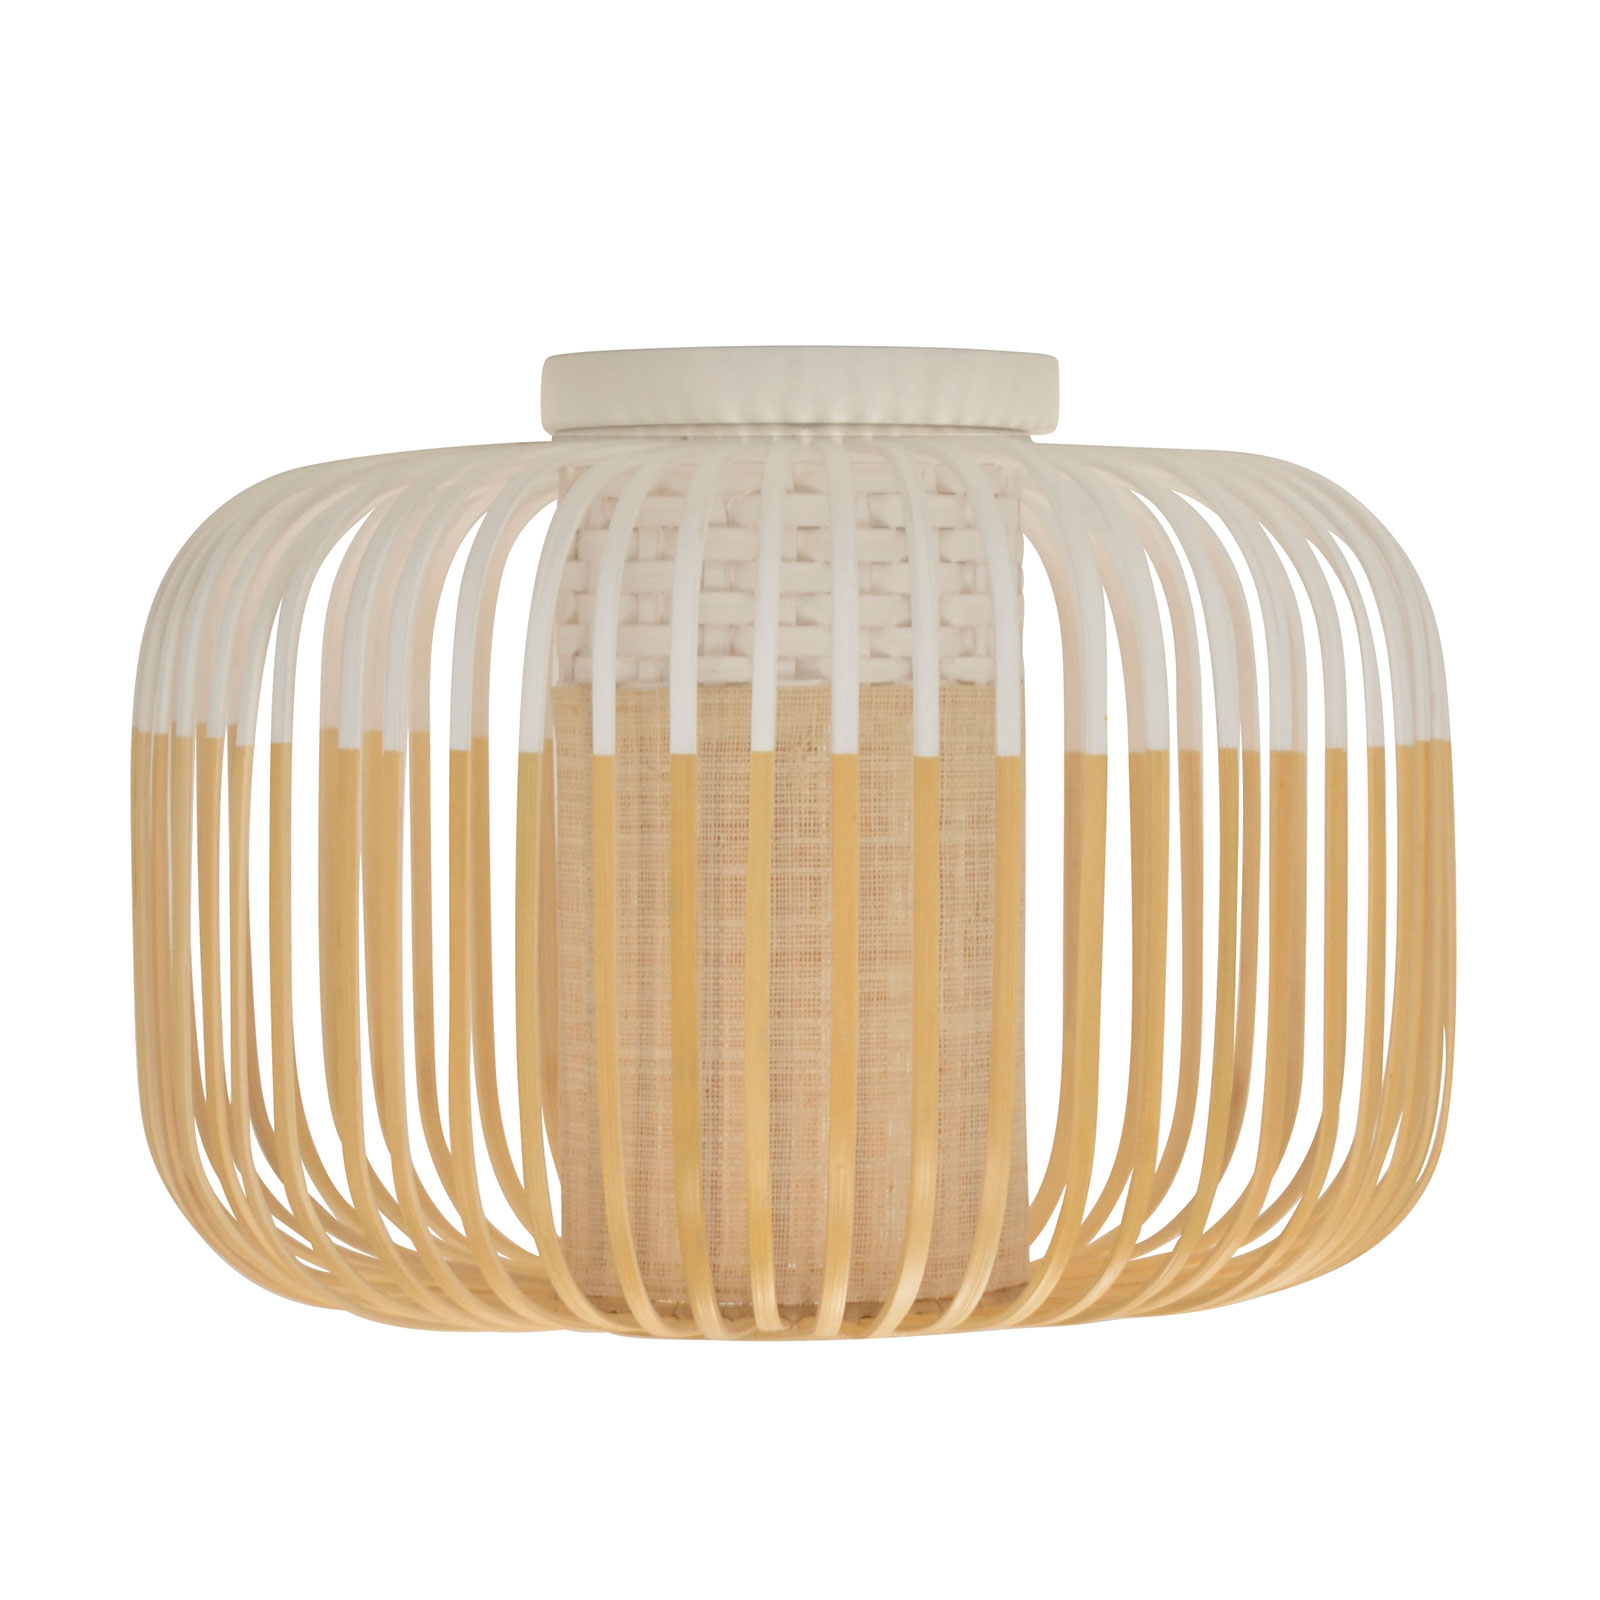 Forestier Bamboo Light S plafondlamp 35cm wit